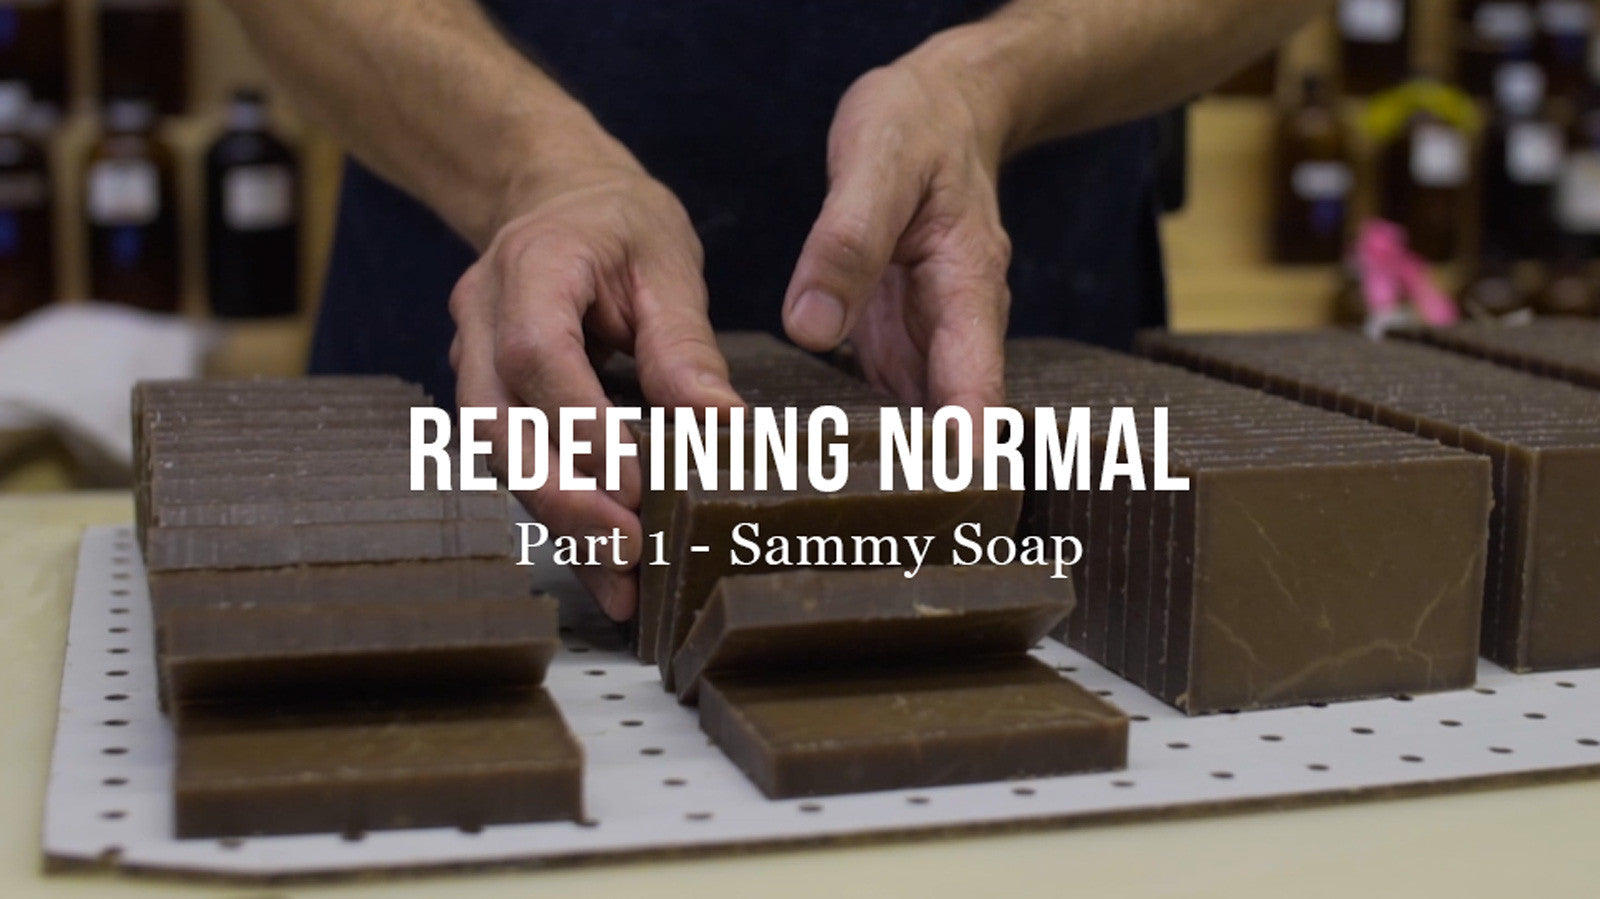 Redefining Normal Series - Sammy Soap